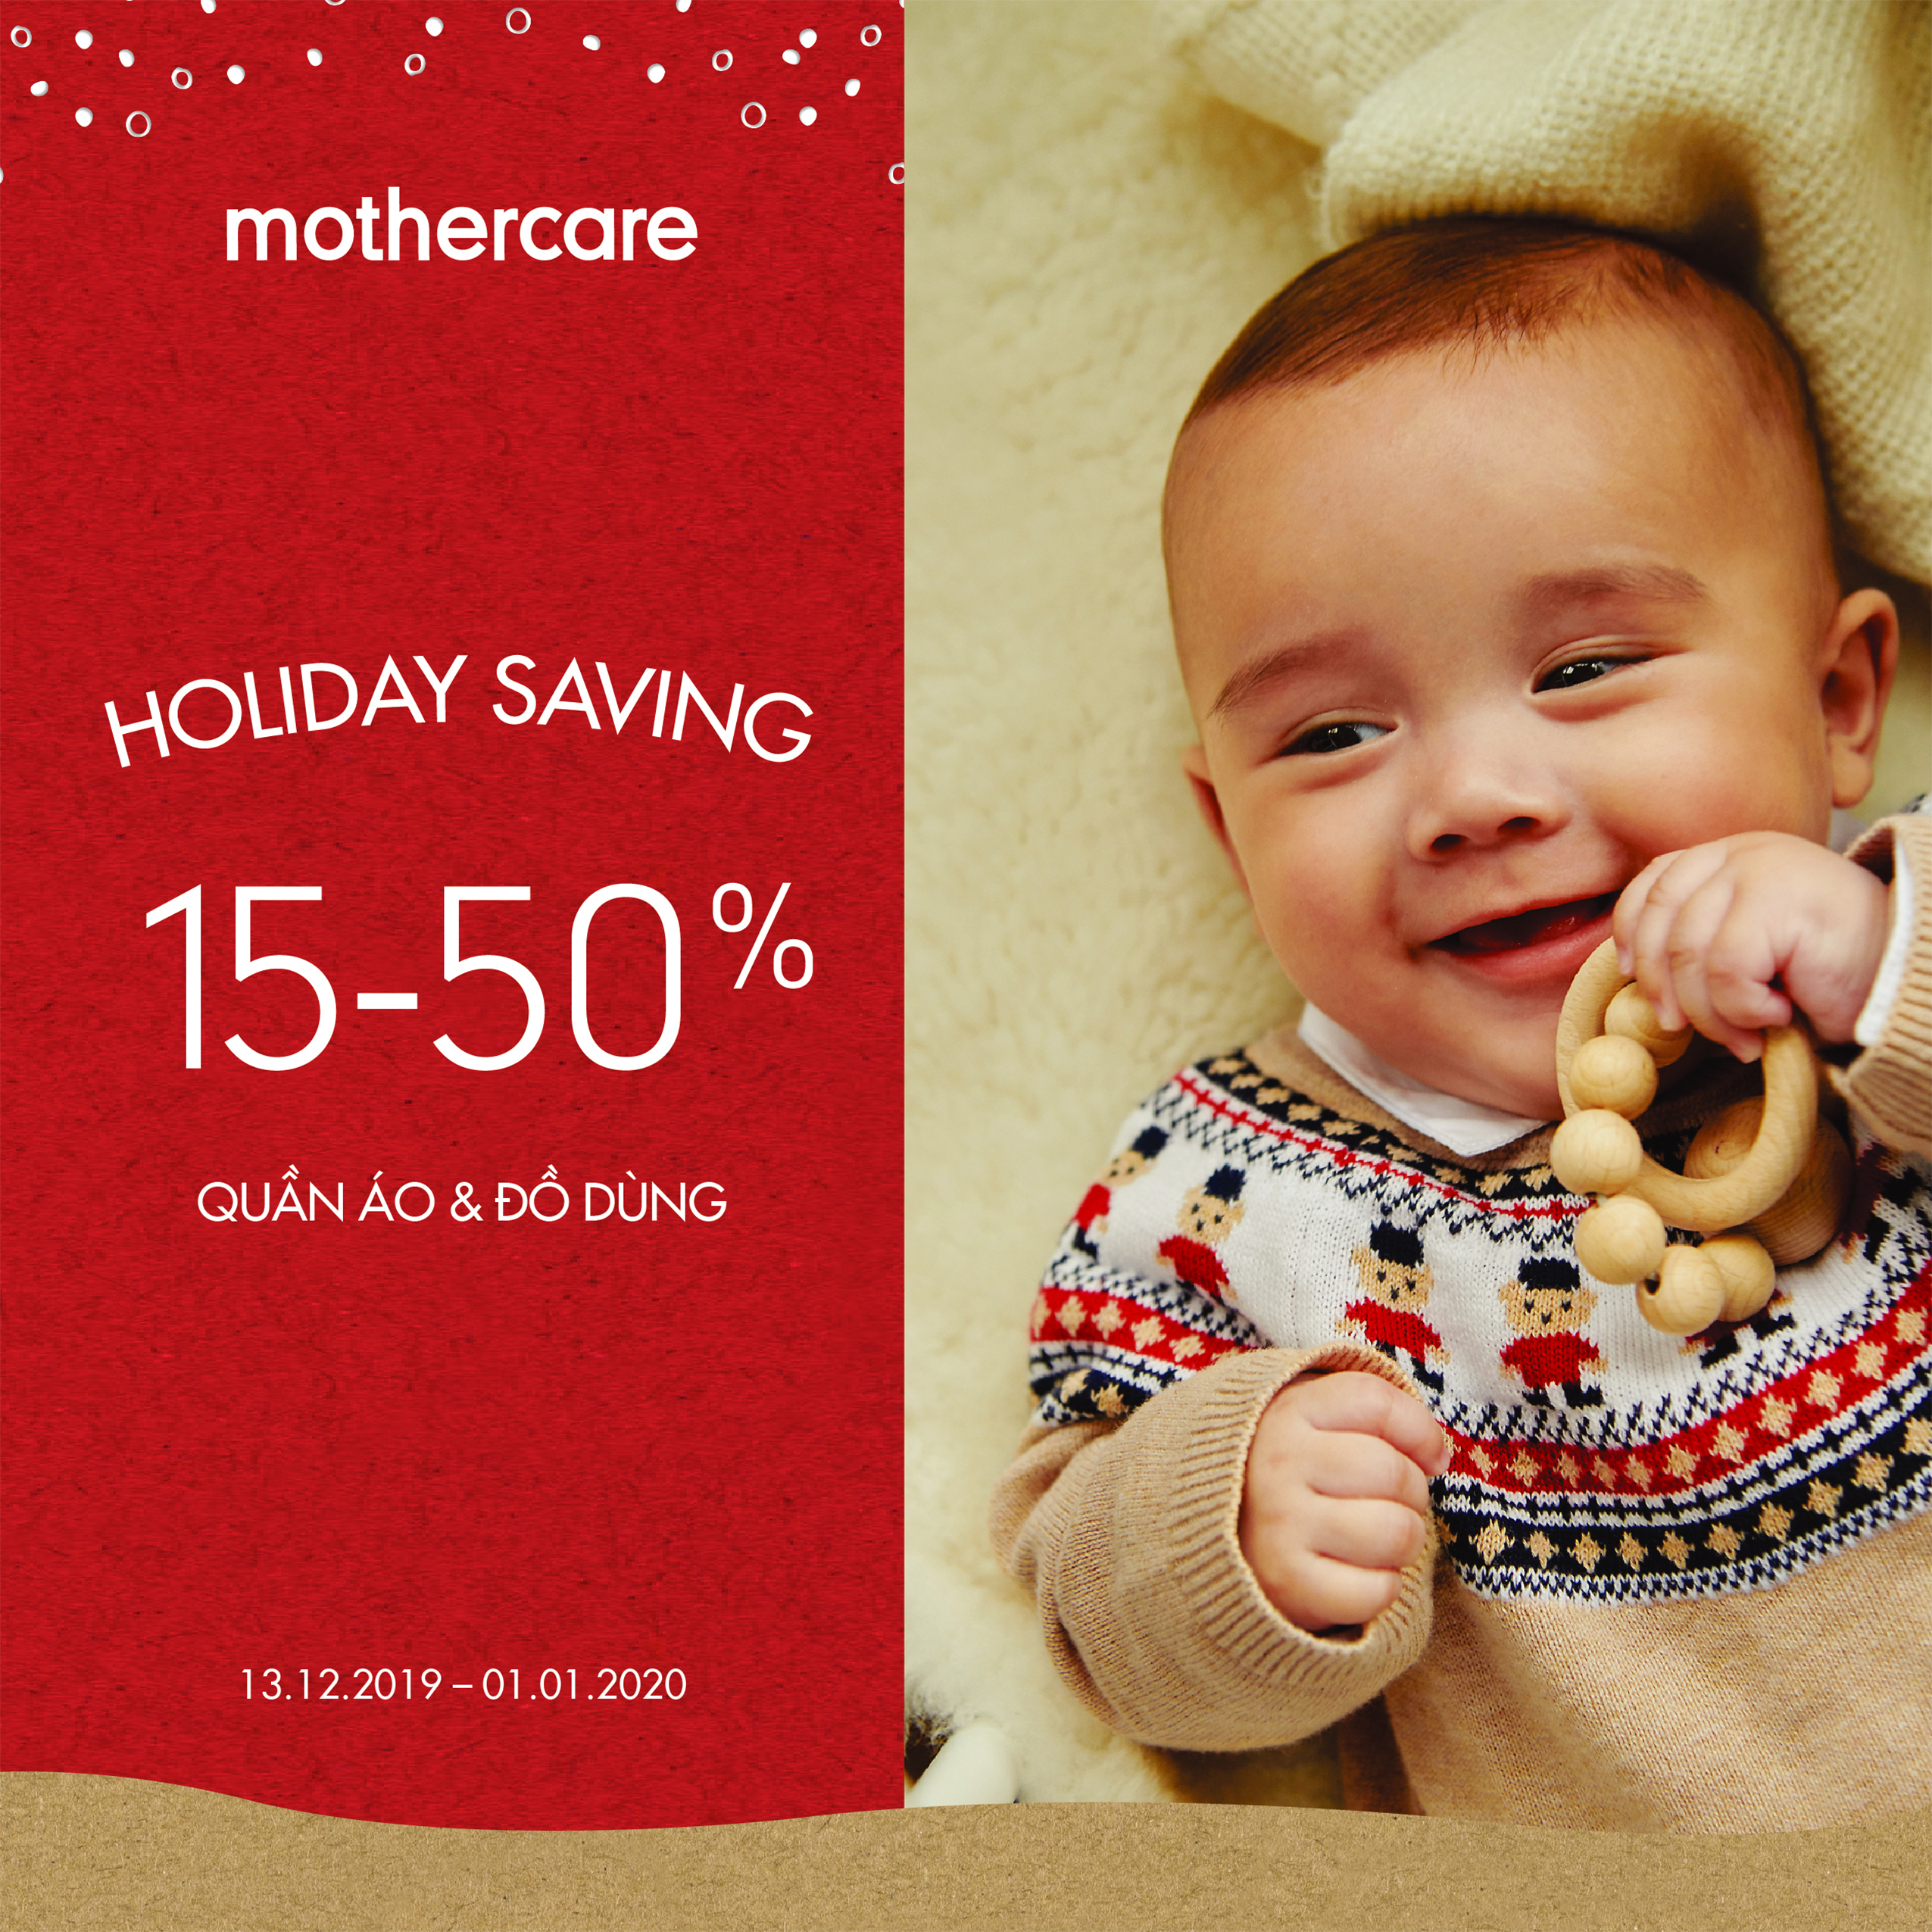 MOTHERCARE - MERRY CHRISTMAS & HAPPY NEW YEAR WITH HOLIDAY SAVING